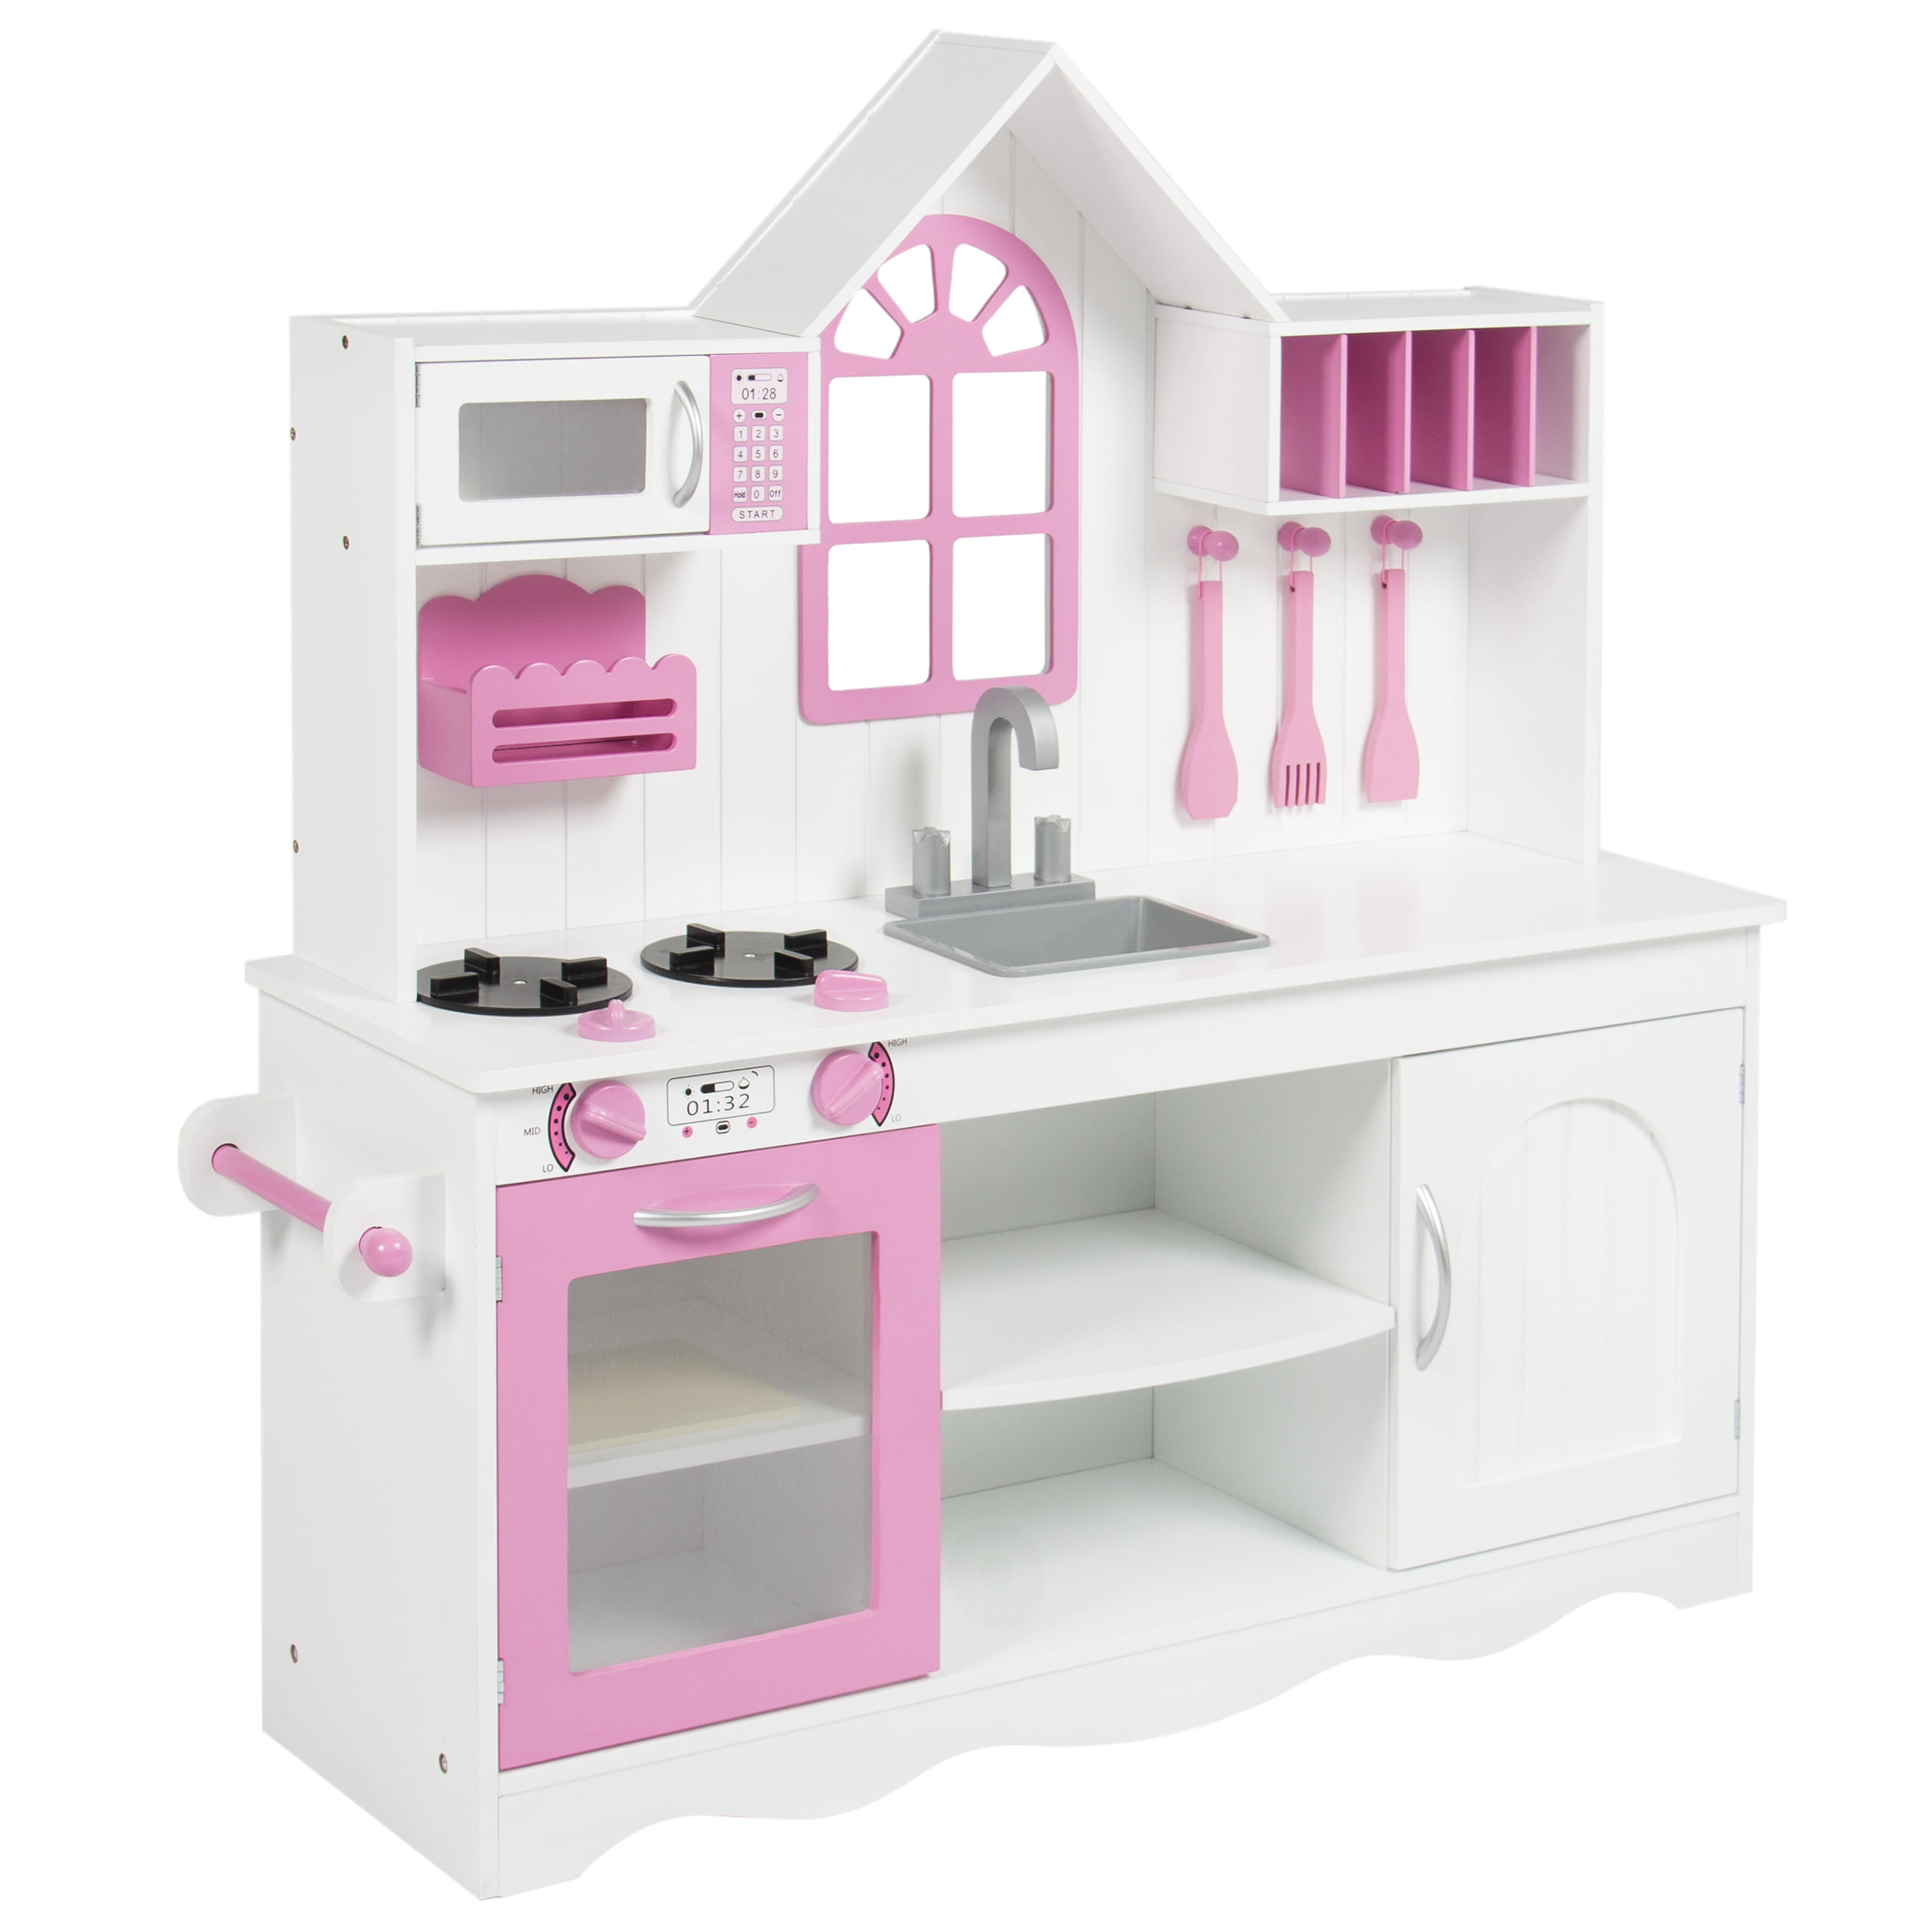 Bcp kids wood kitchen toy toddler pretend play set solid wood construction white walmart com